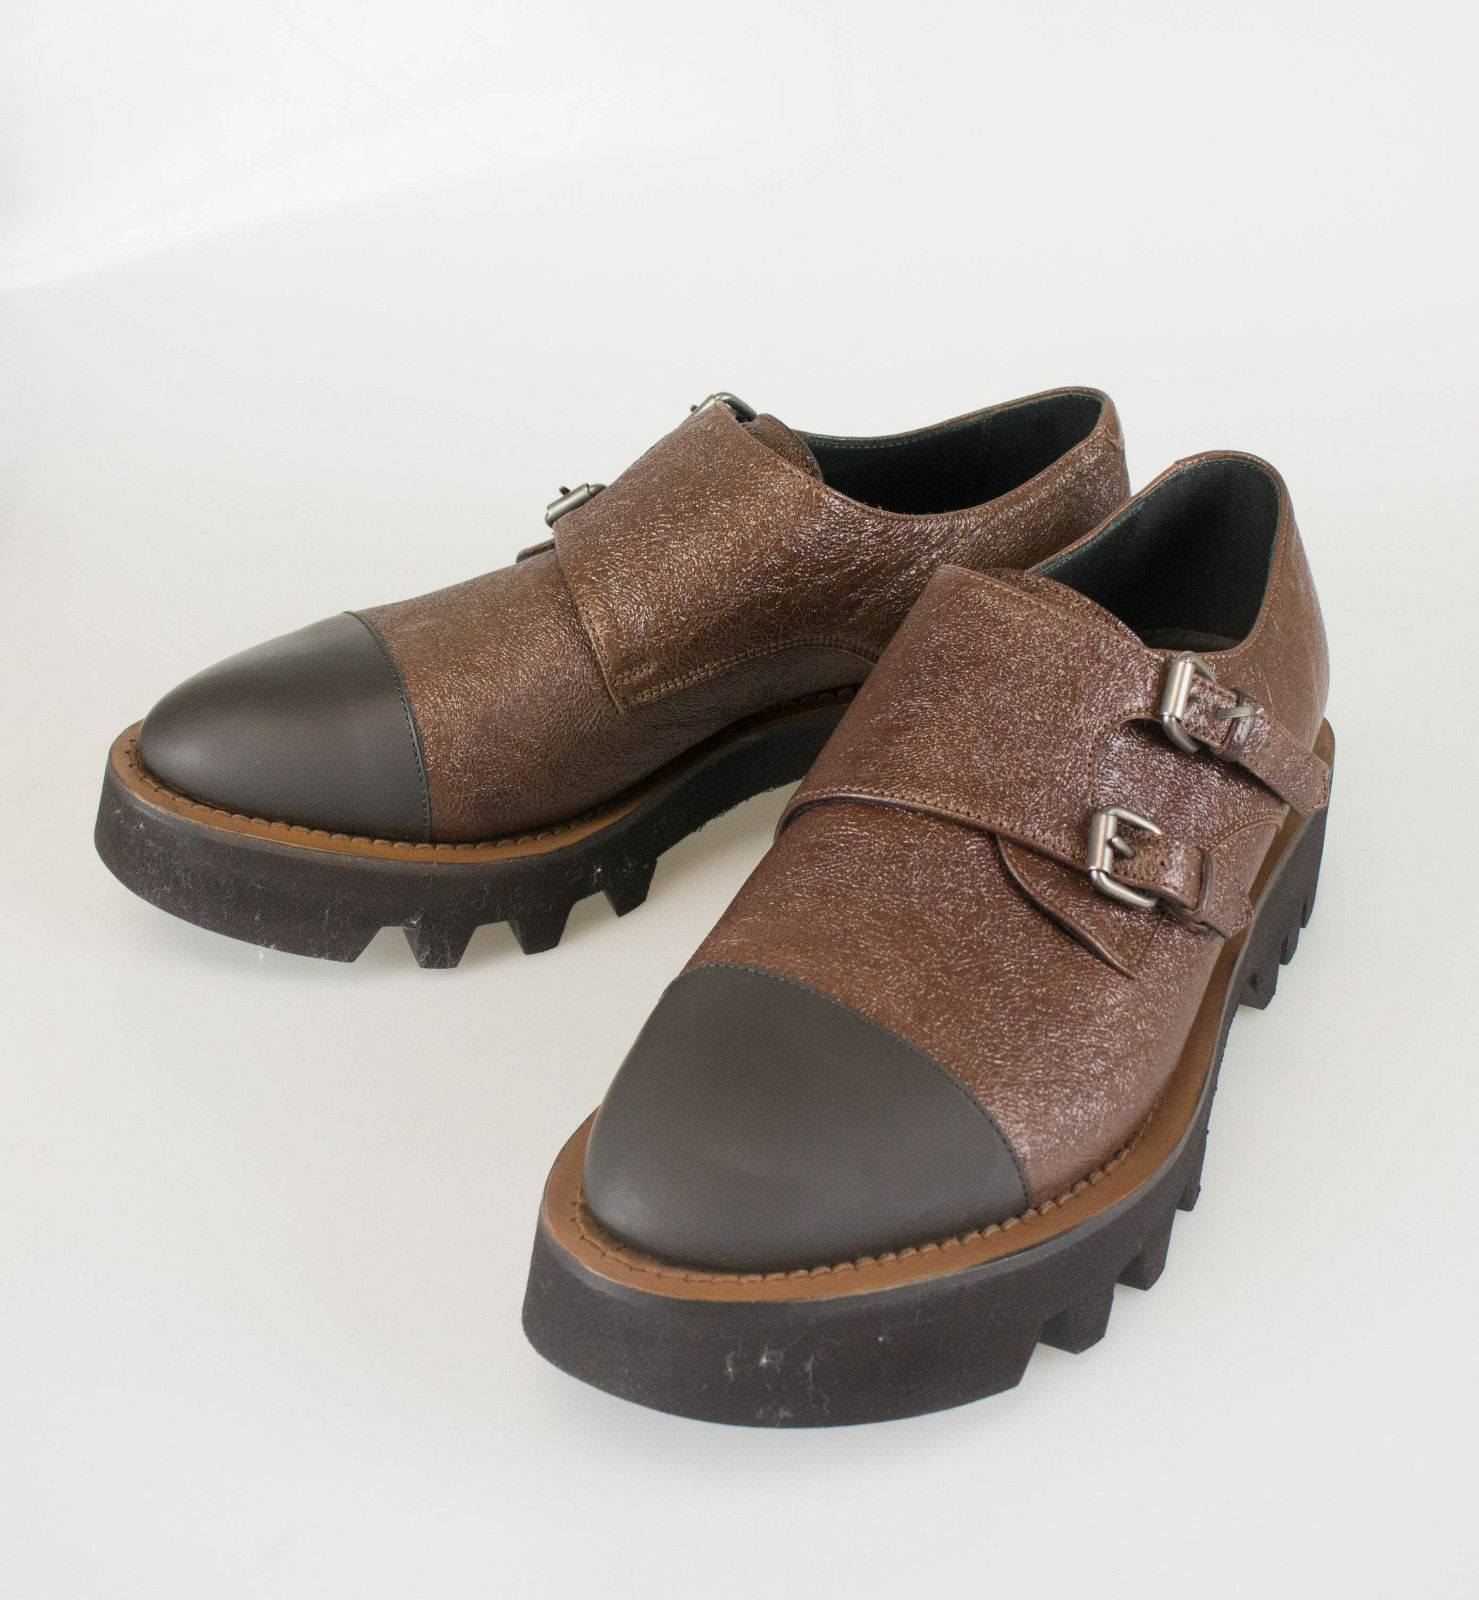 New. BRUNELLO CUCINELLI marron Leather Double Monkstrap chaussures Taille 6.5 36.5  1355